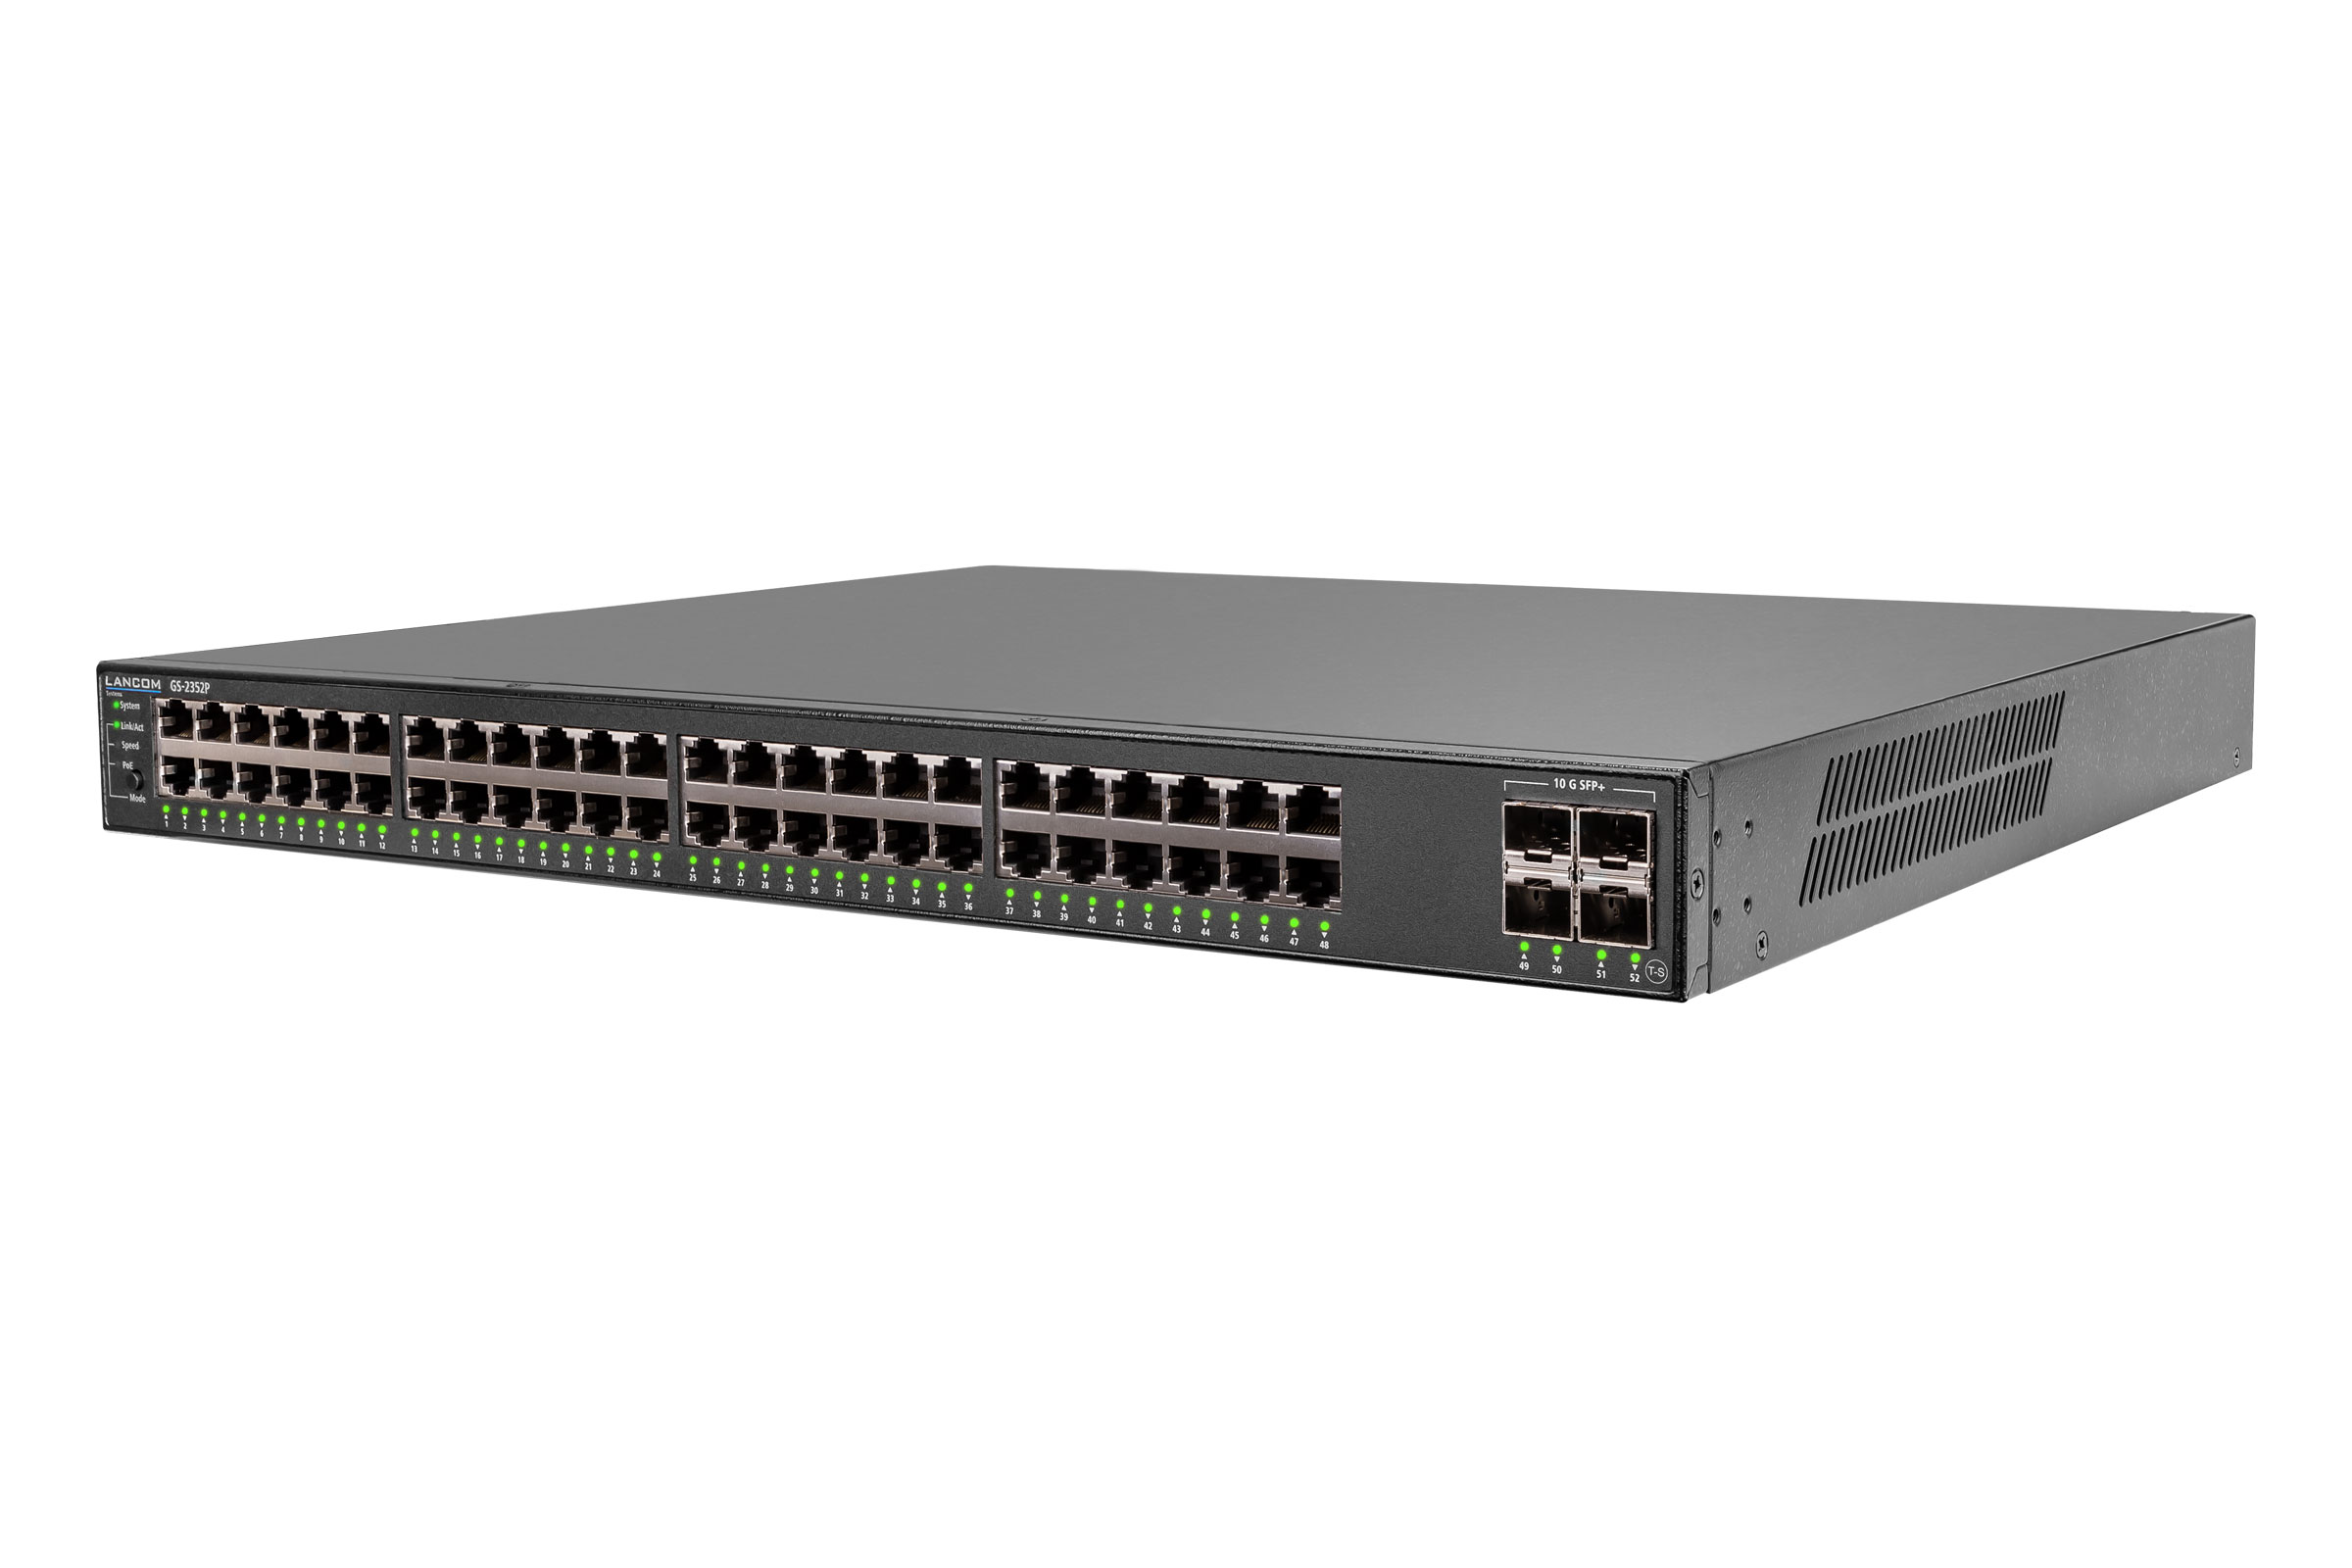 Produktbild - Lancom GS-2352P Switch